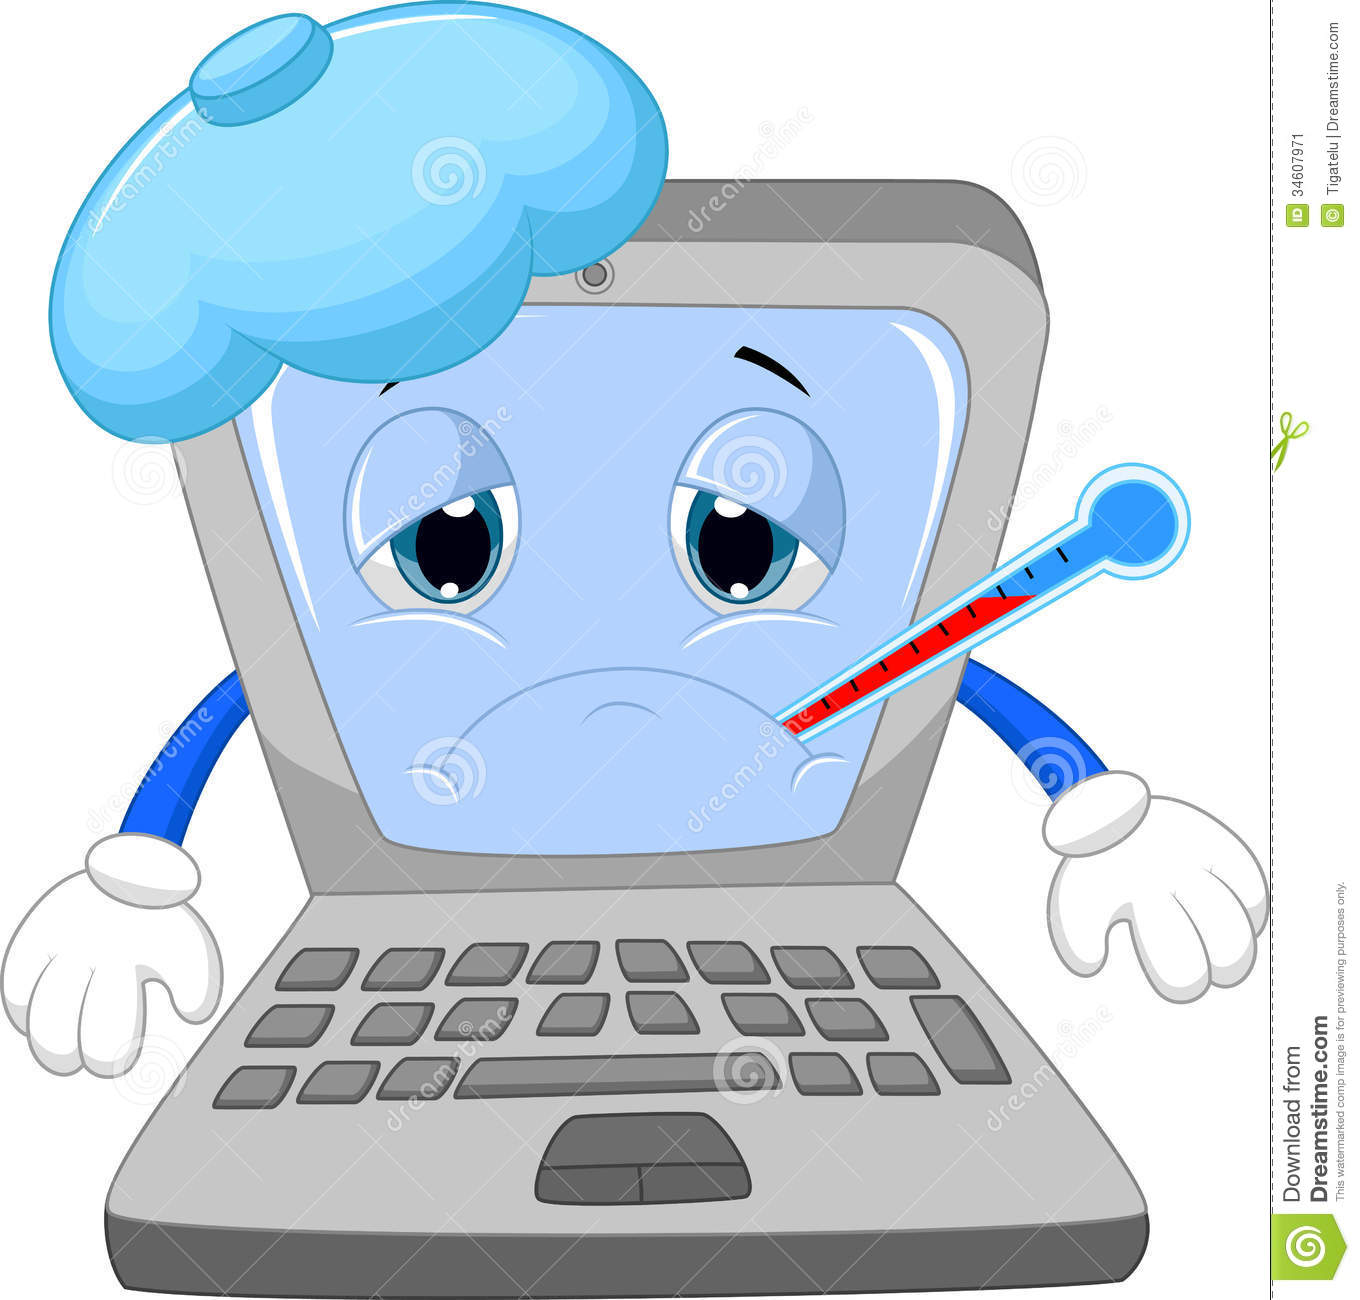 computer animated clipart - photo #29